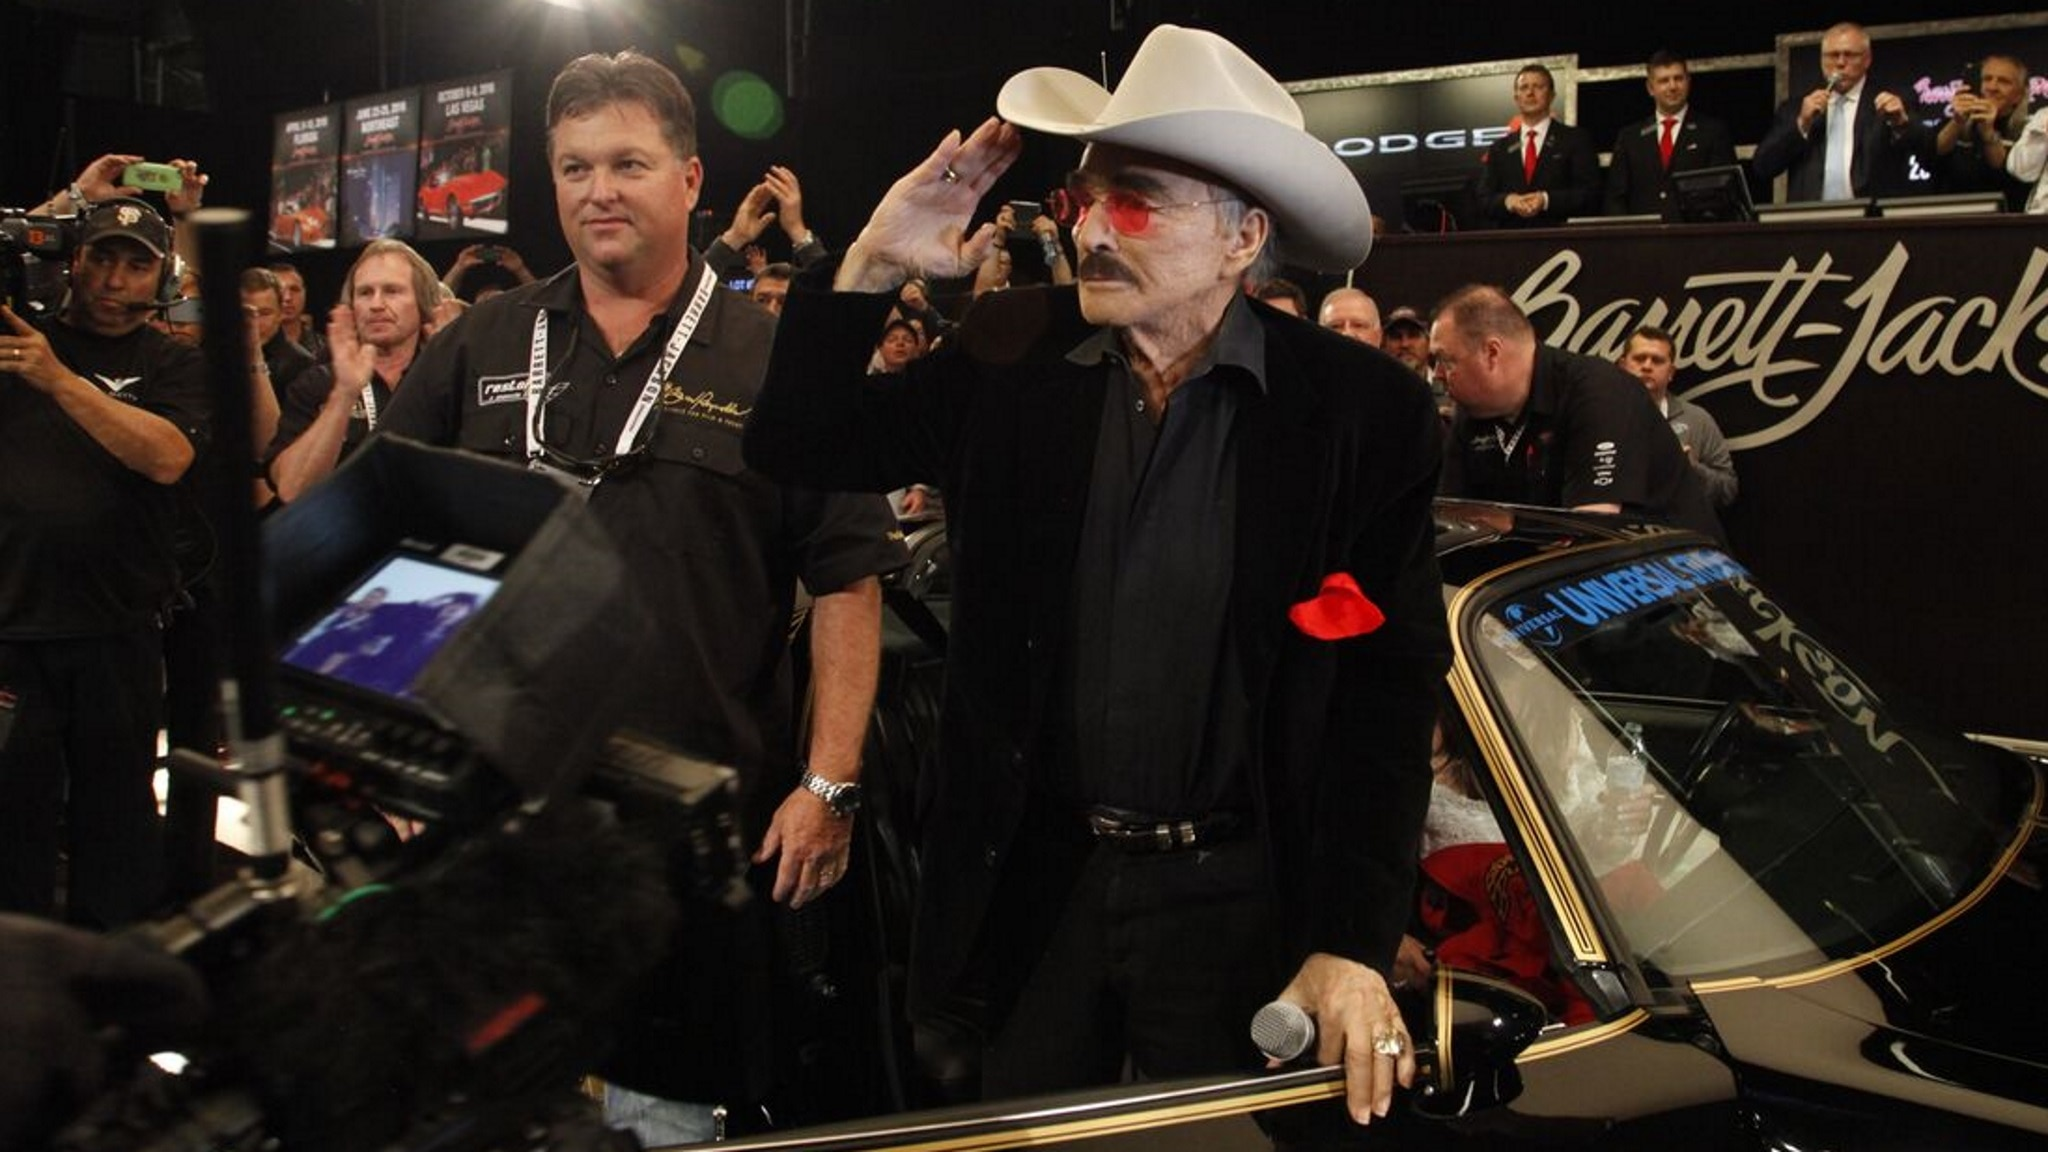 Burt Reynolds Barrett Jackson Auction Las Vegas